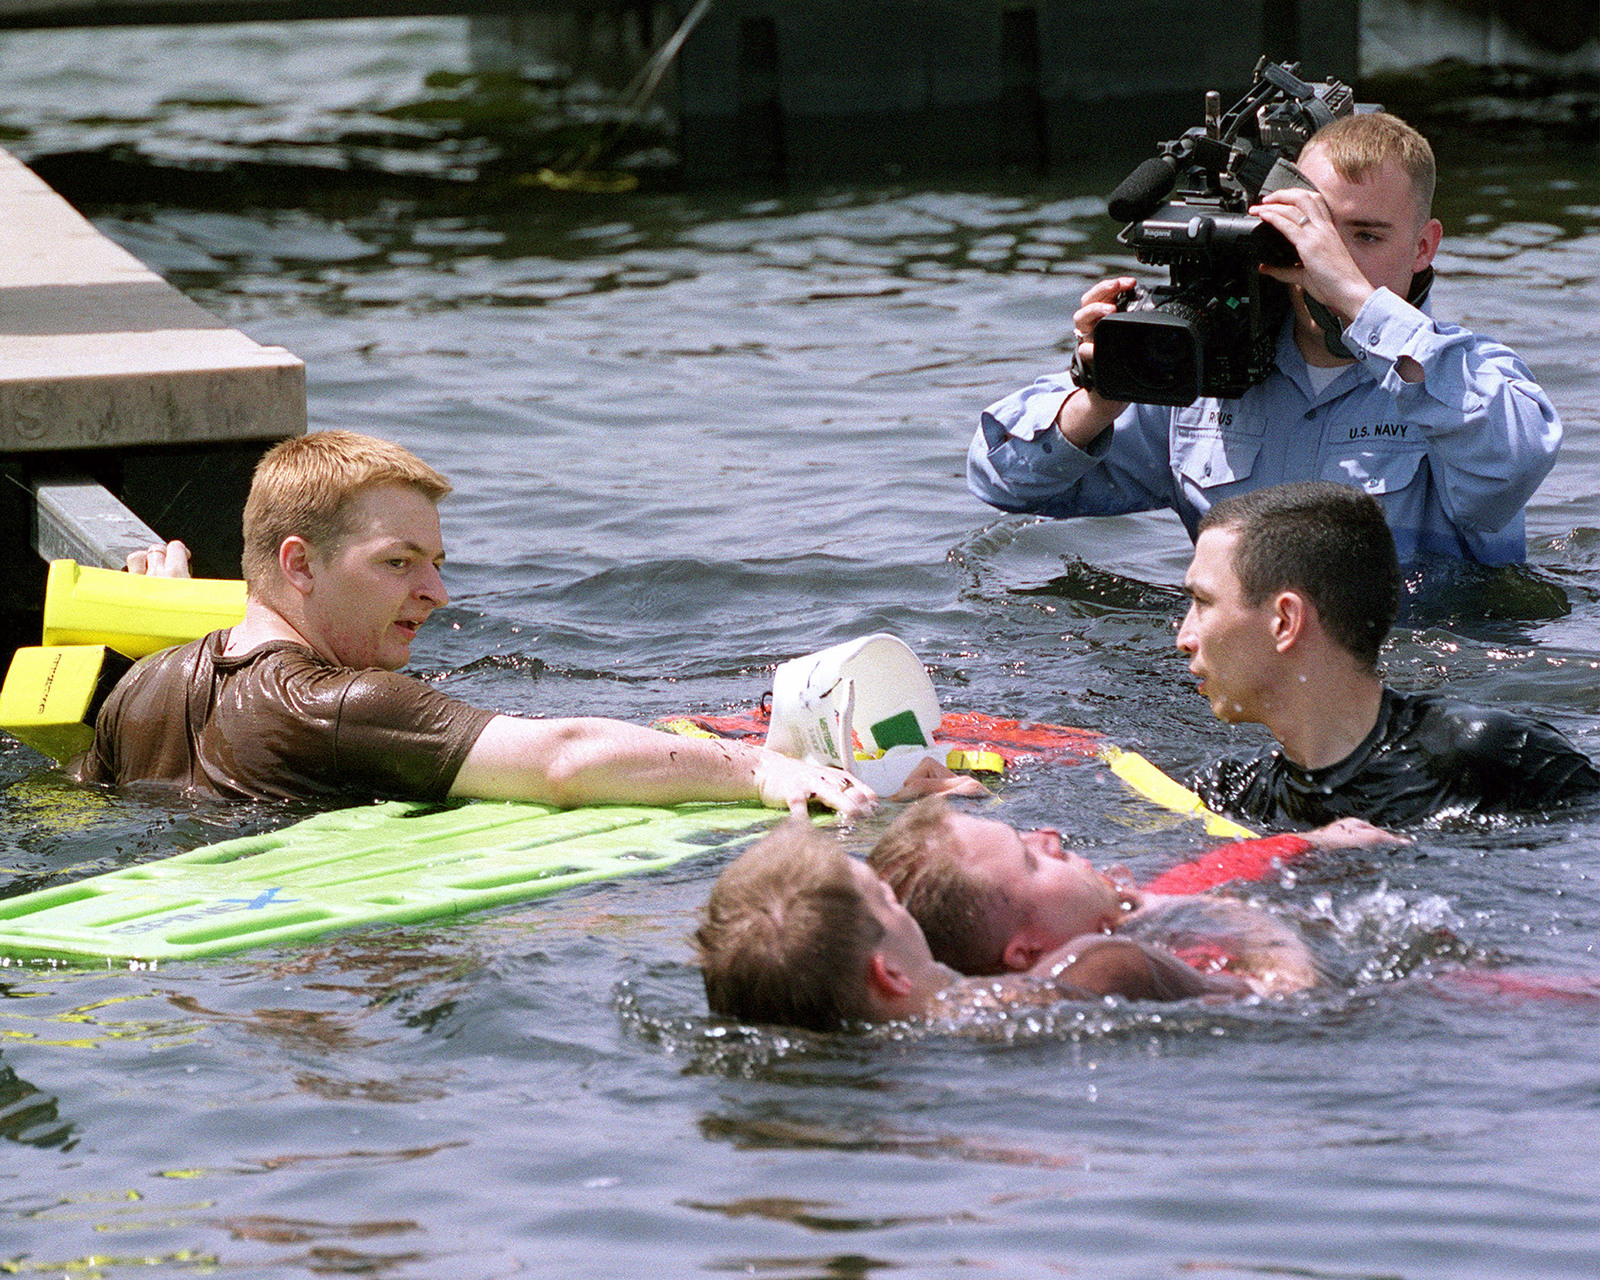 """Navy Journalist 3rd Class (JO3) Jack Rous videotapes United States Air Force (USAF) SENIOR AIRMAN (SRA) Brad Starkey and STAFF Sergeant (SSGT) Albert Hopkins during the water-rescue portion of the """"6th Annual Emergency Medical Technicians Rodeo"""" held at Misawa Air Base, Japan"""